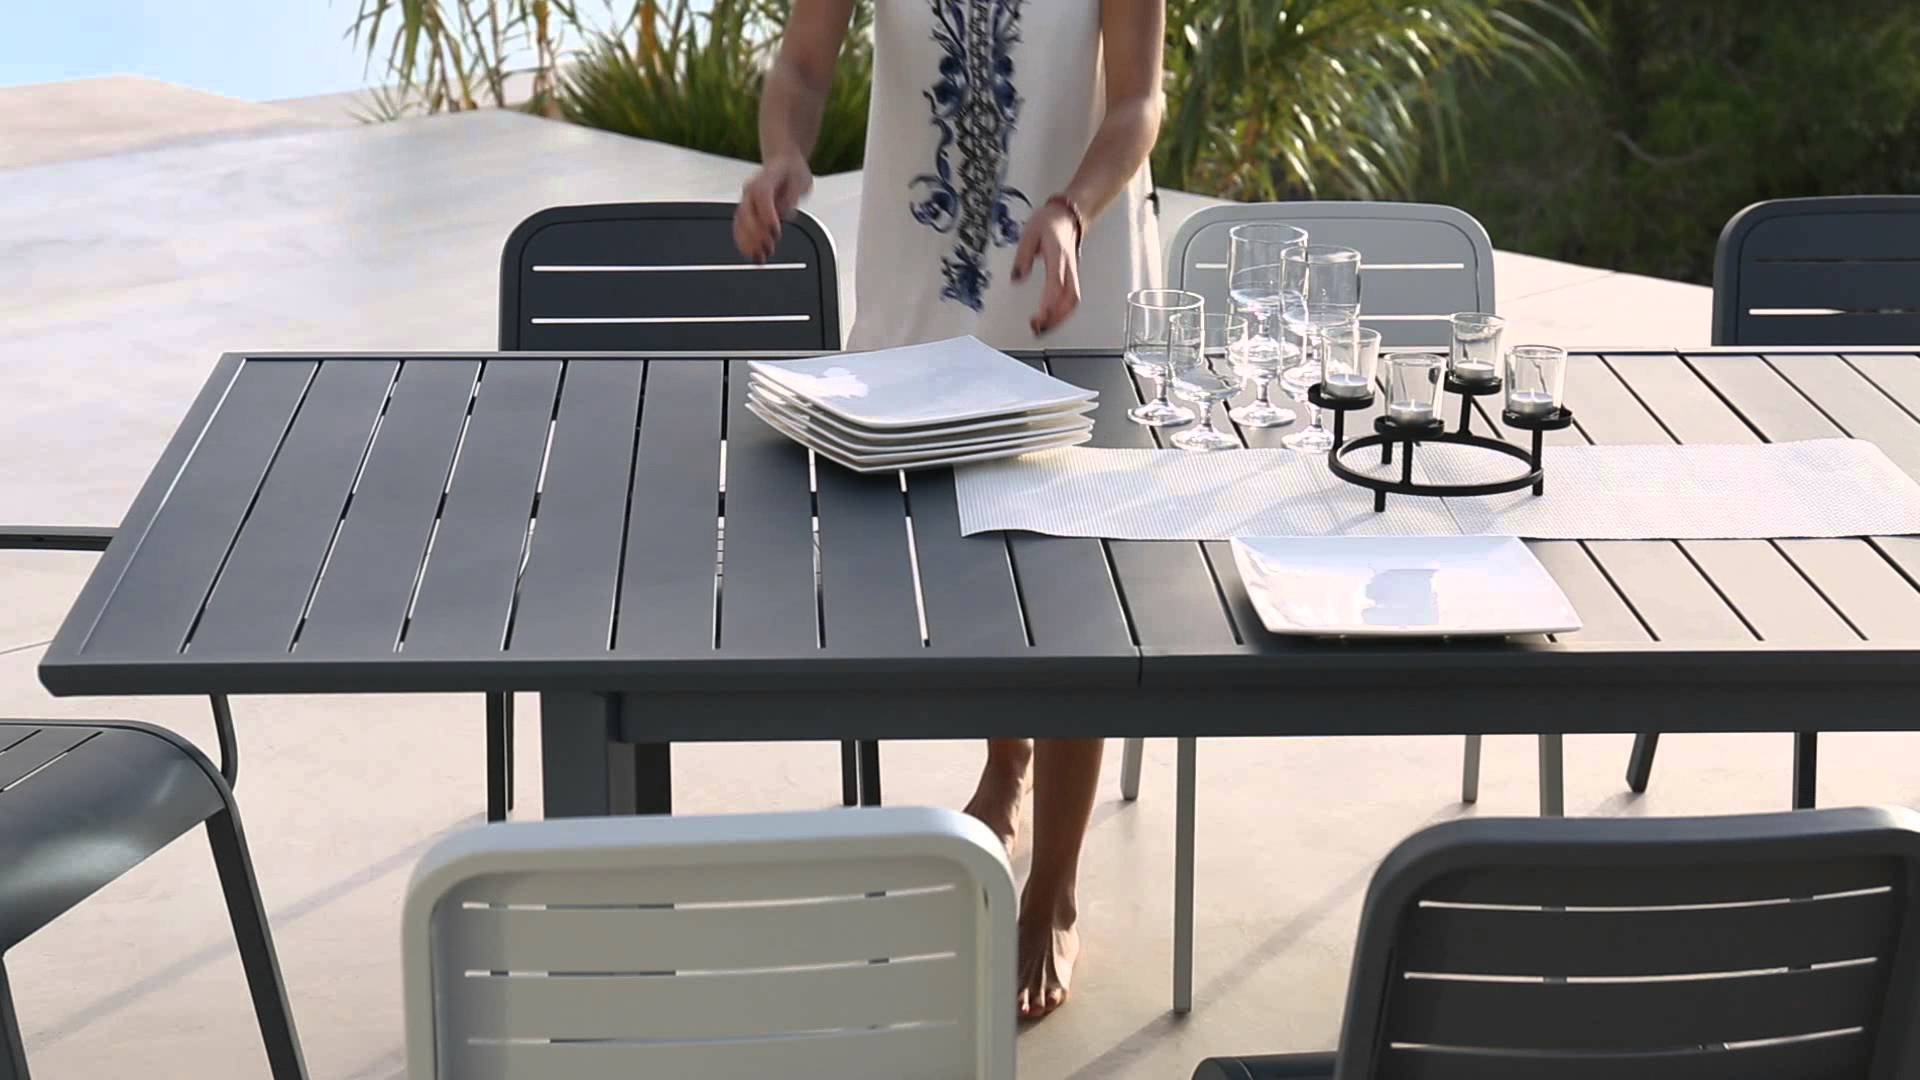 chaise-salon-de-jardin-aluminium-15 Incroyable De Table Jardin Ronde